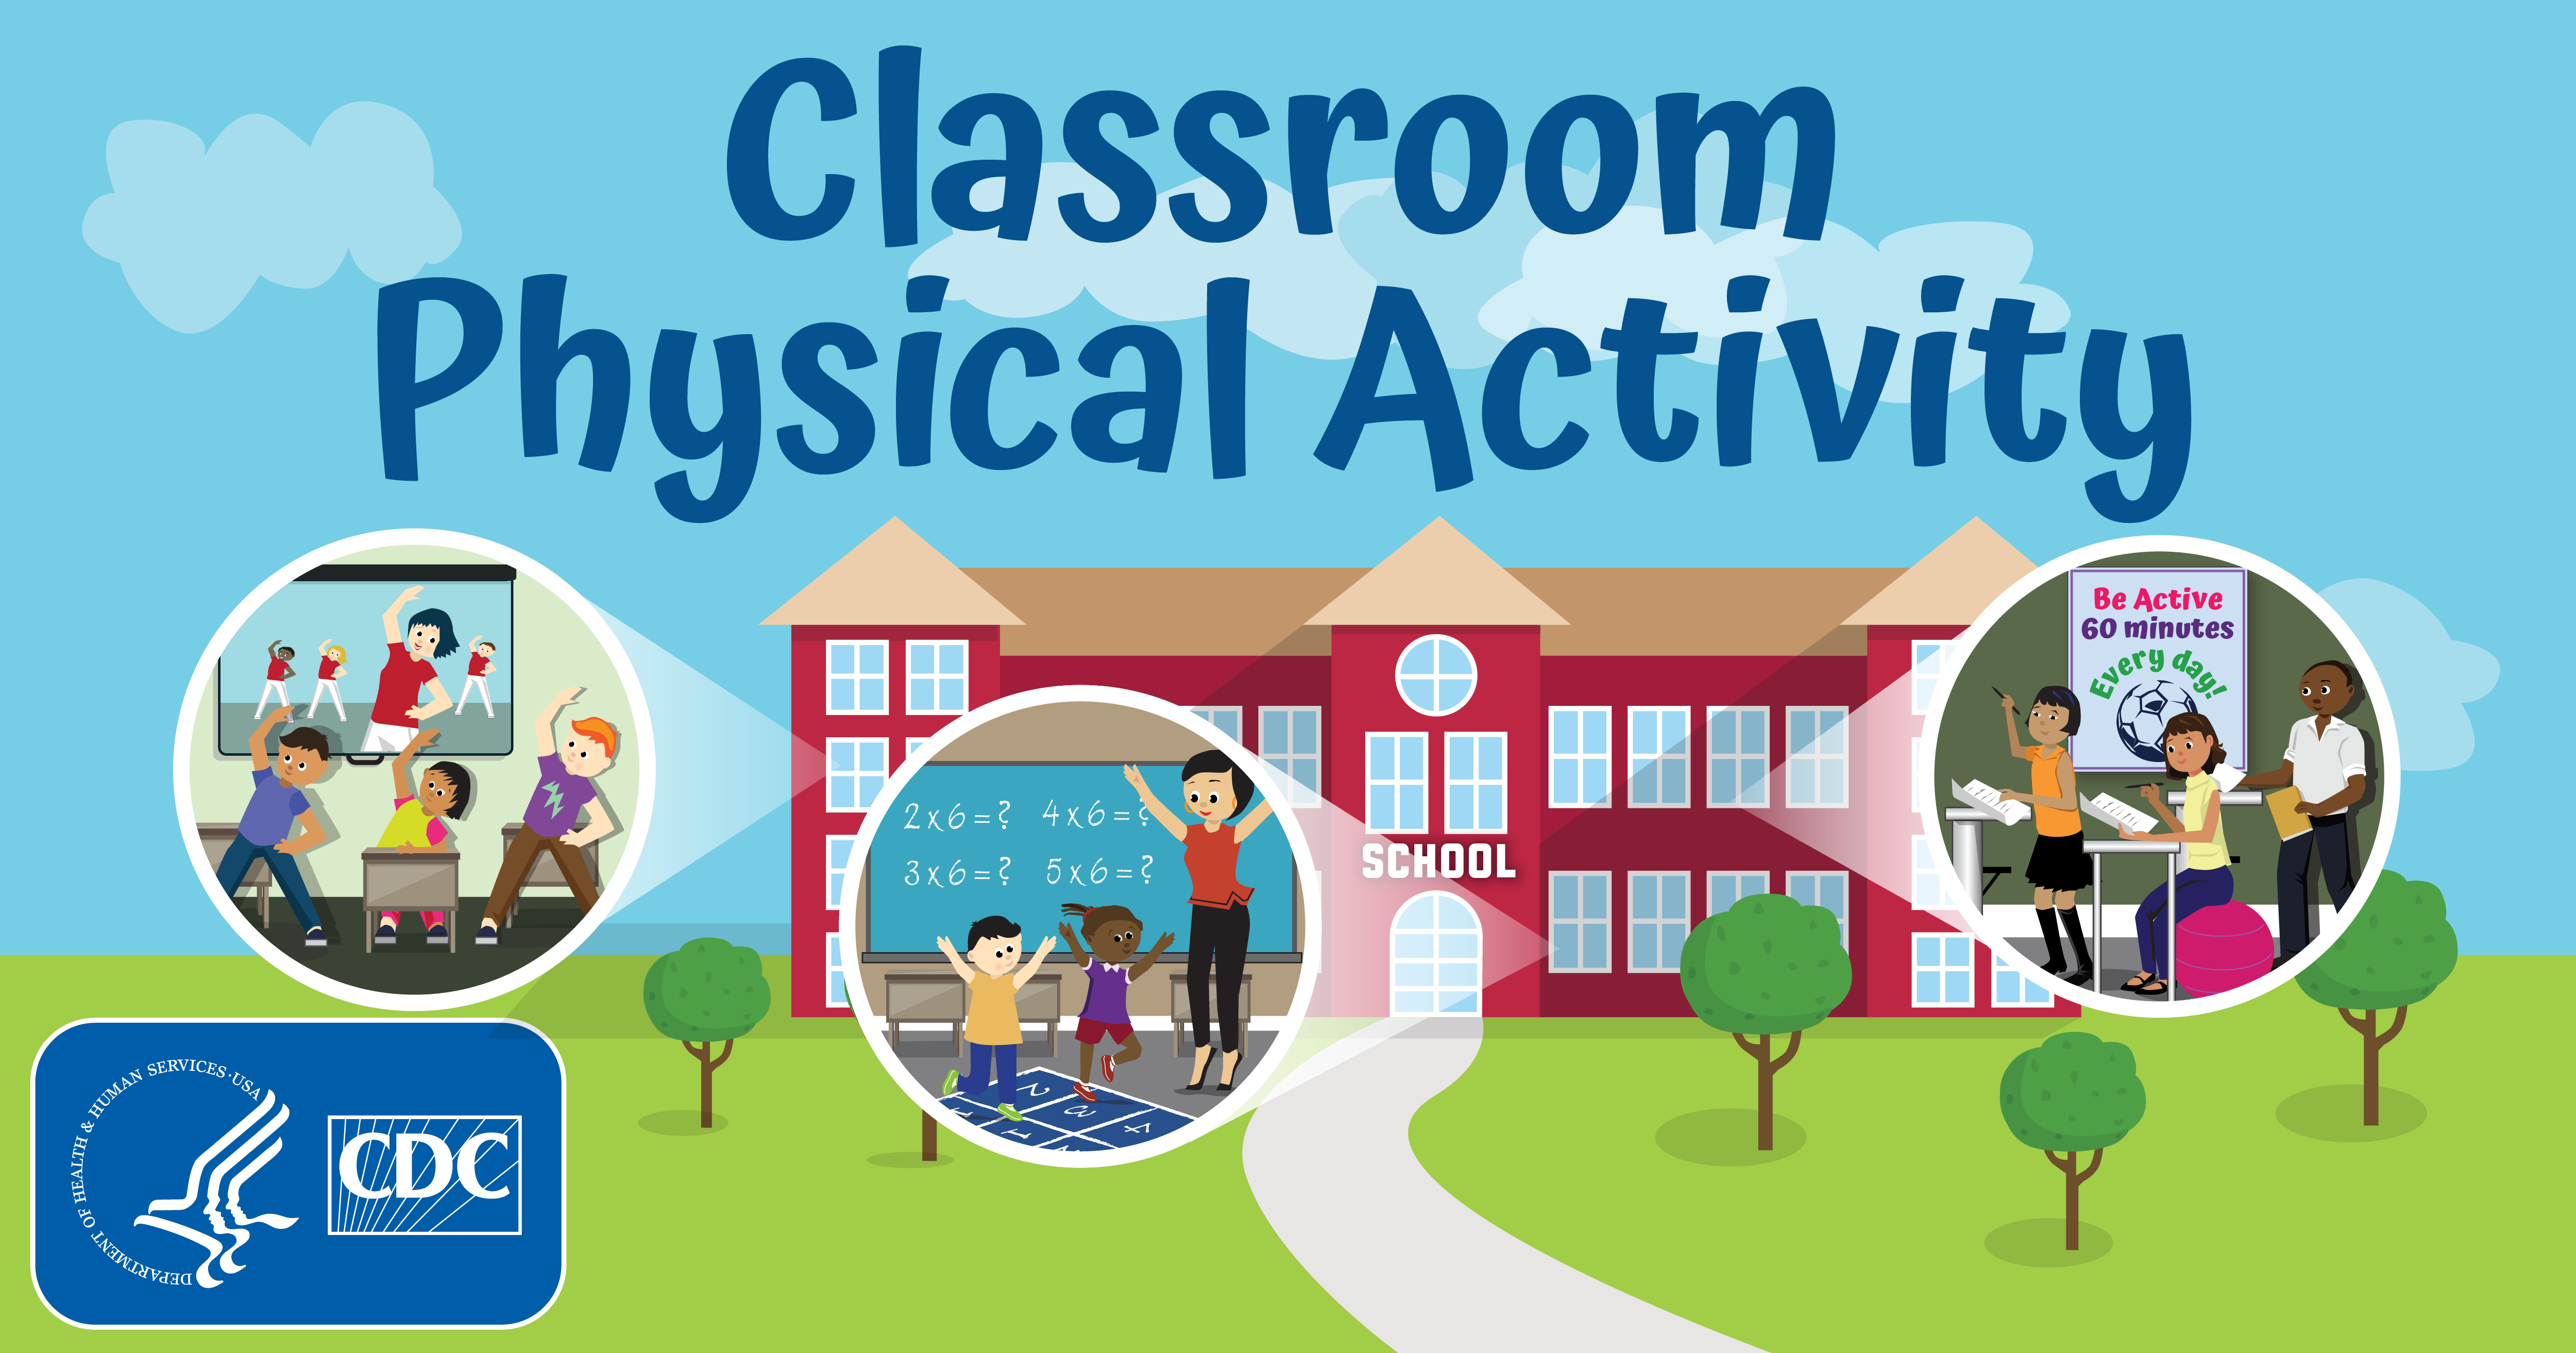 Classroom Physical Activity Social Media and Newsletters